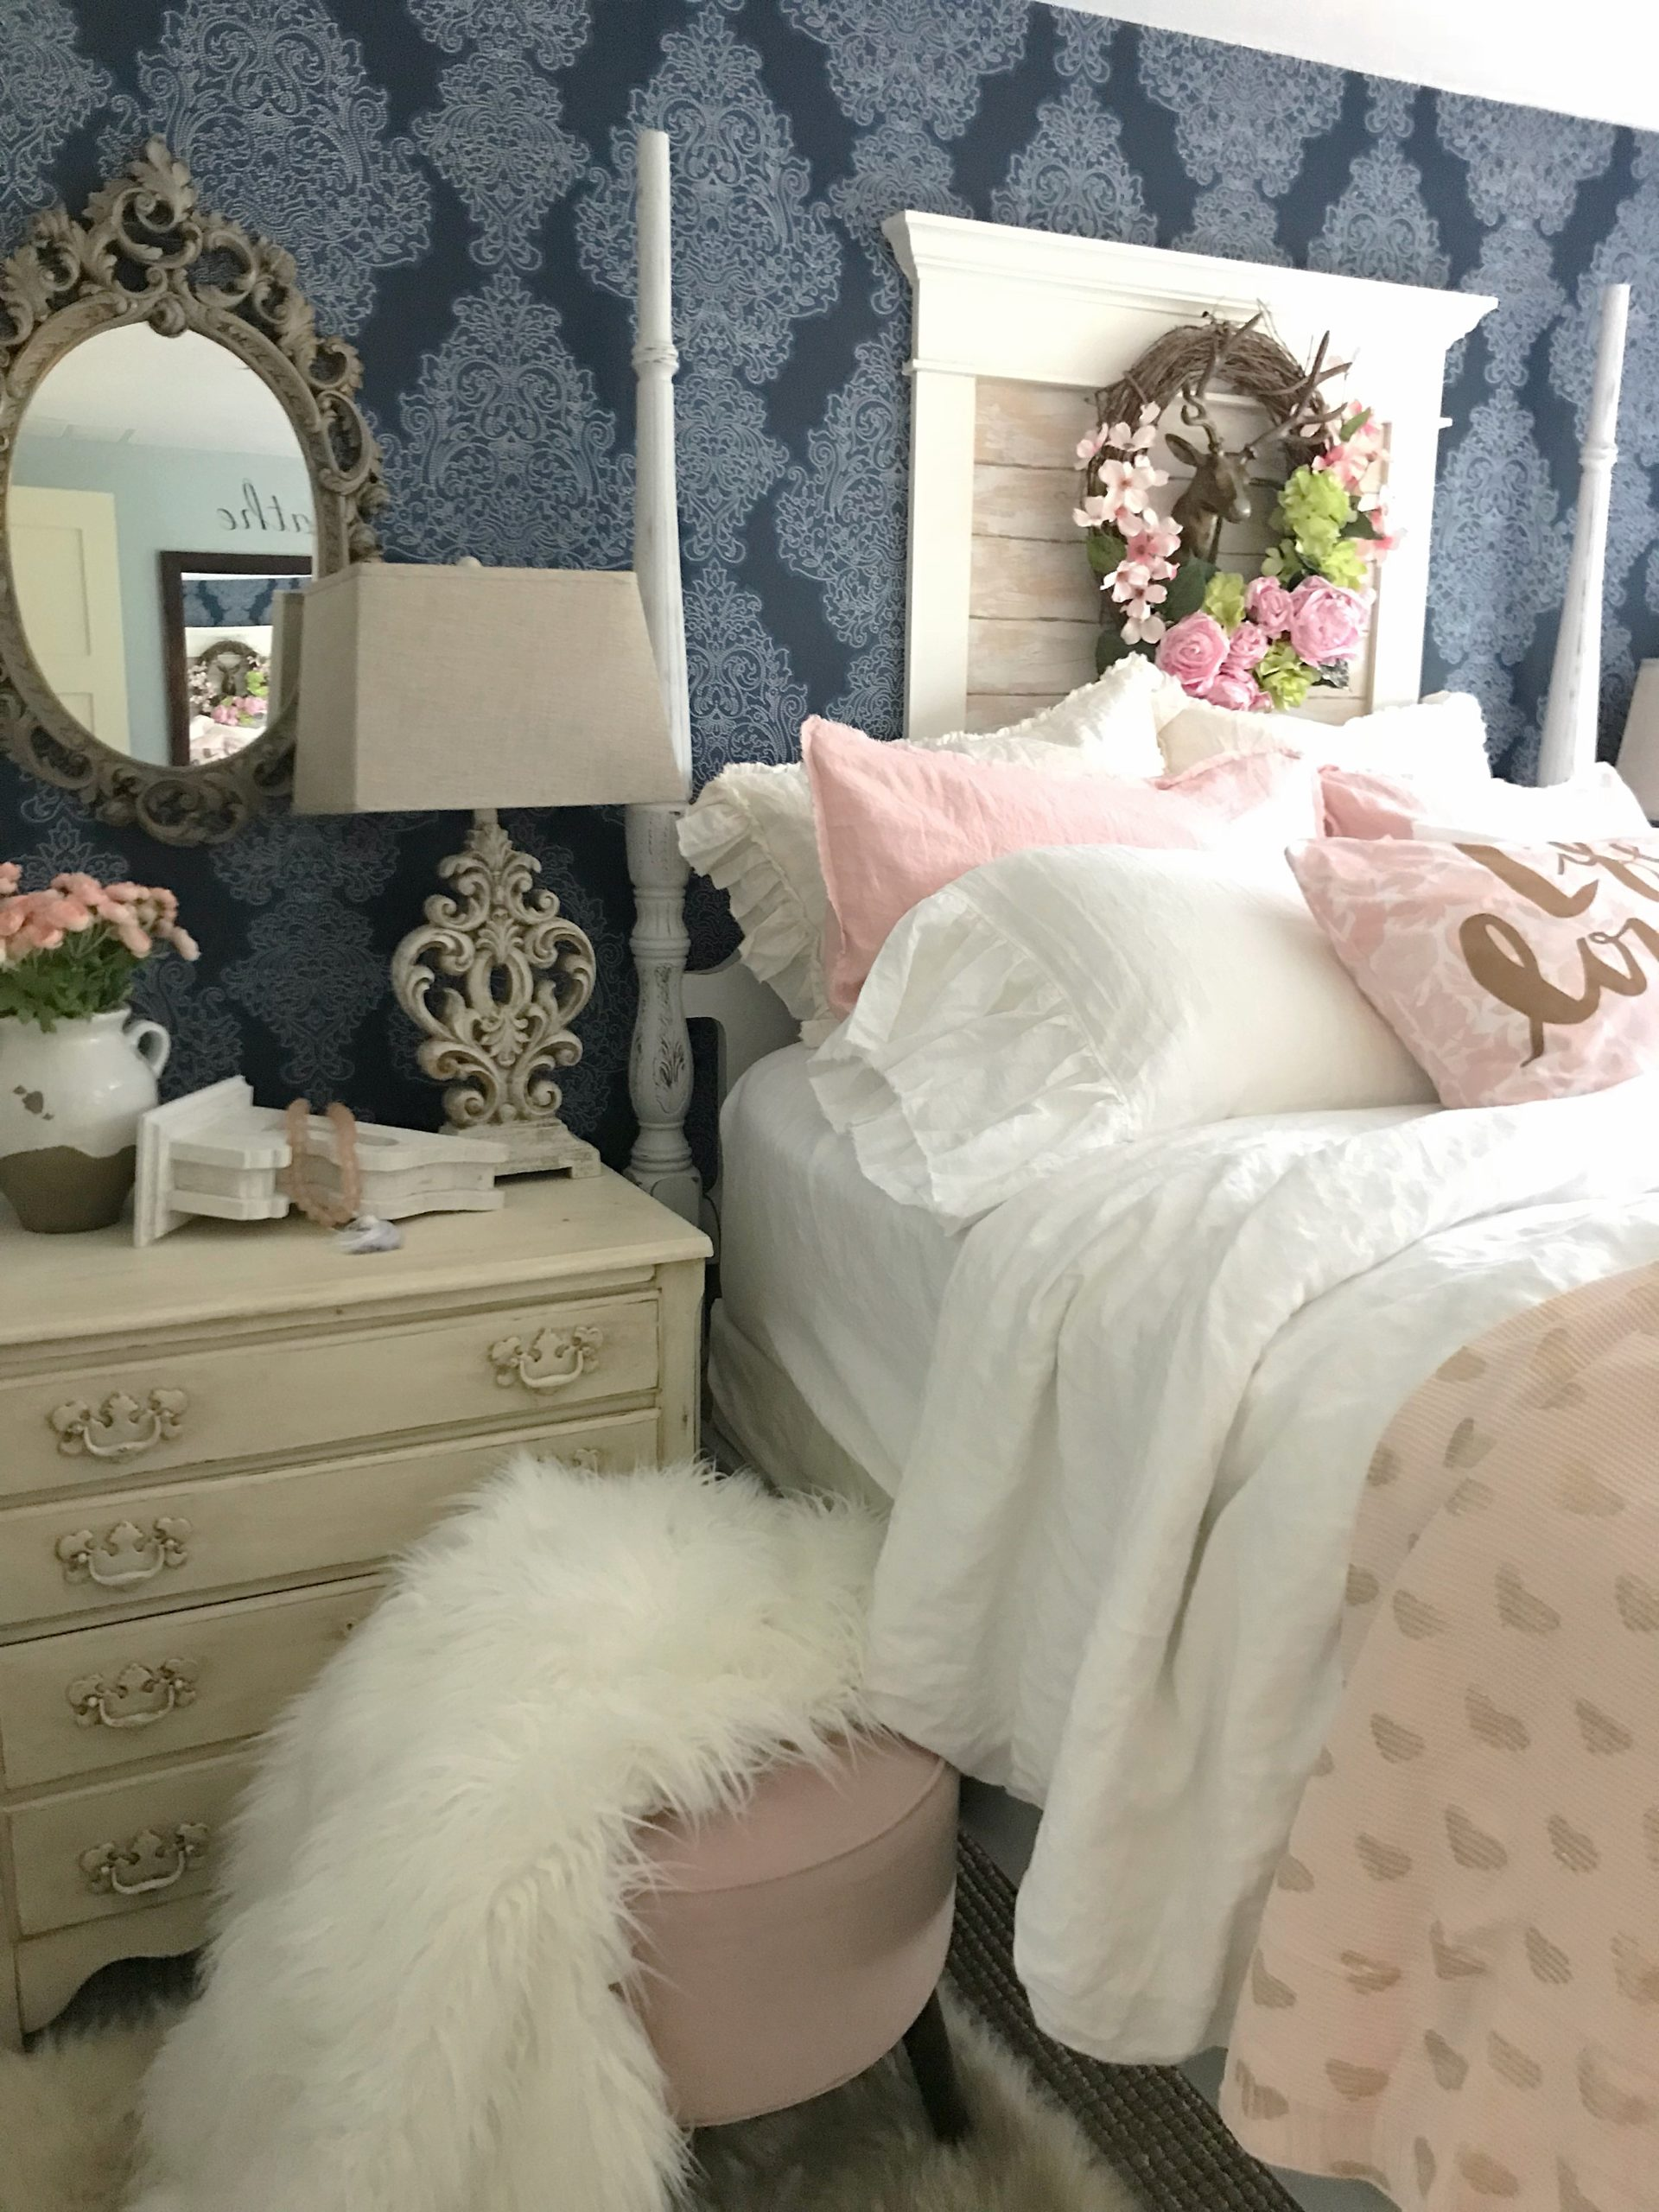 13 Tips for Making a Cozy Bedroom Retreat